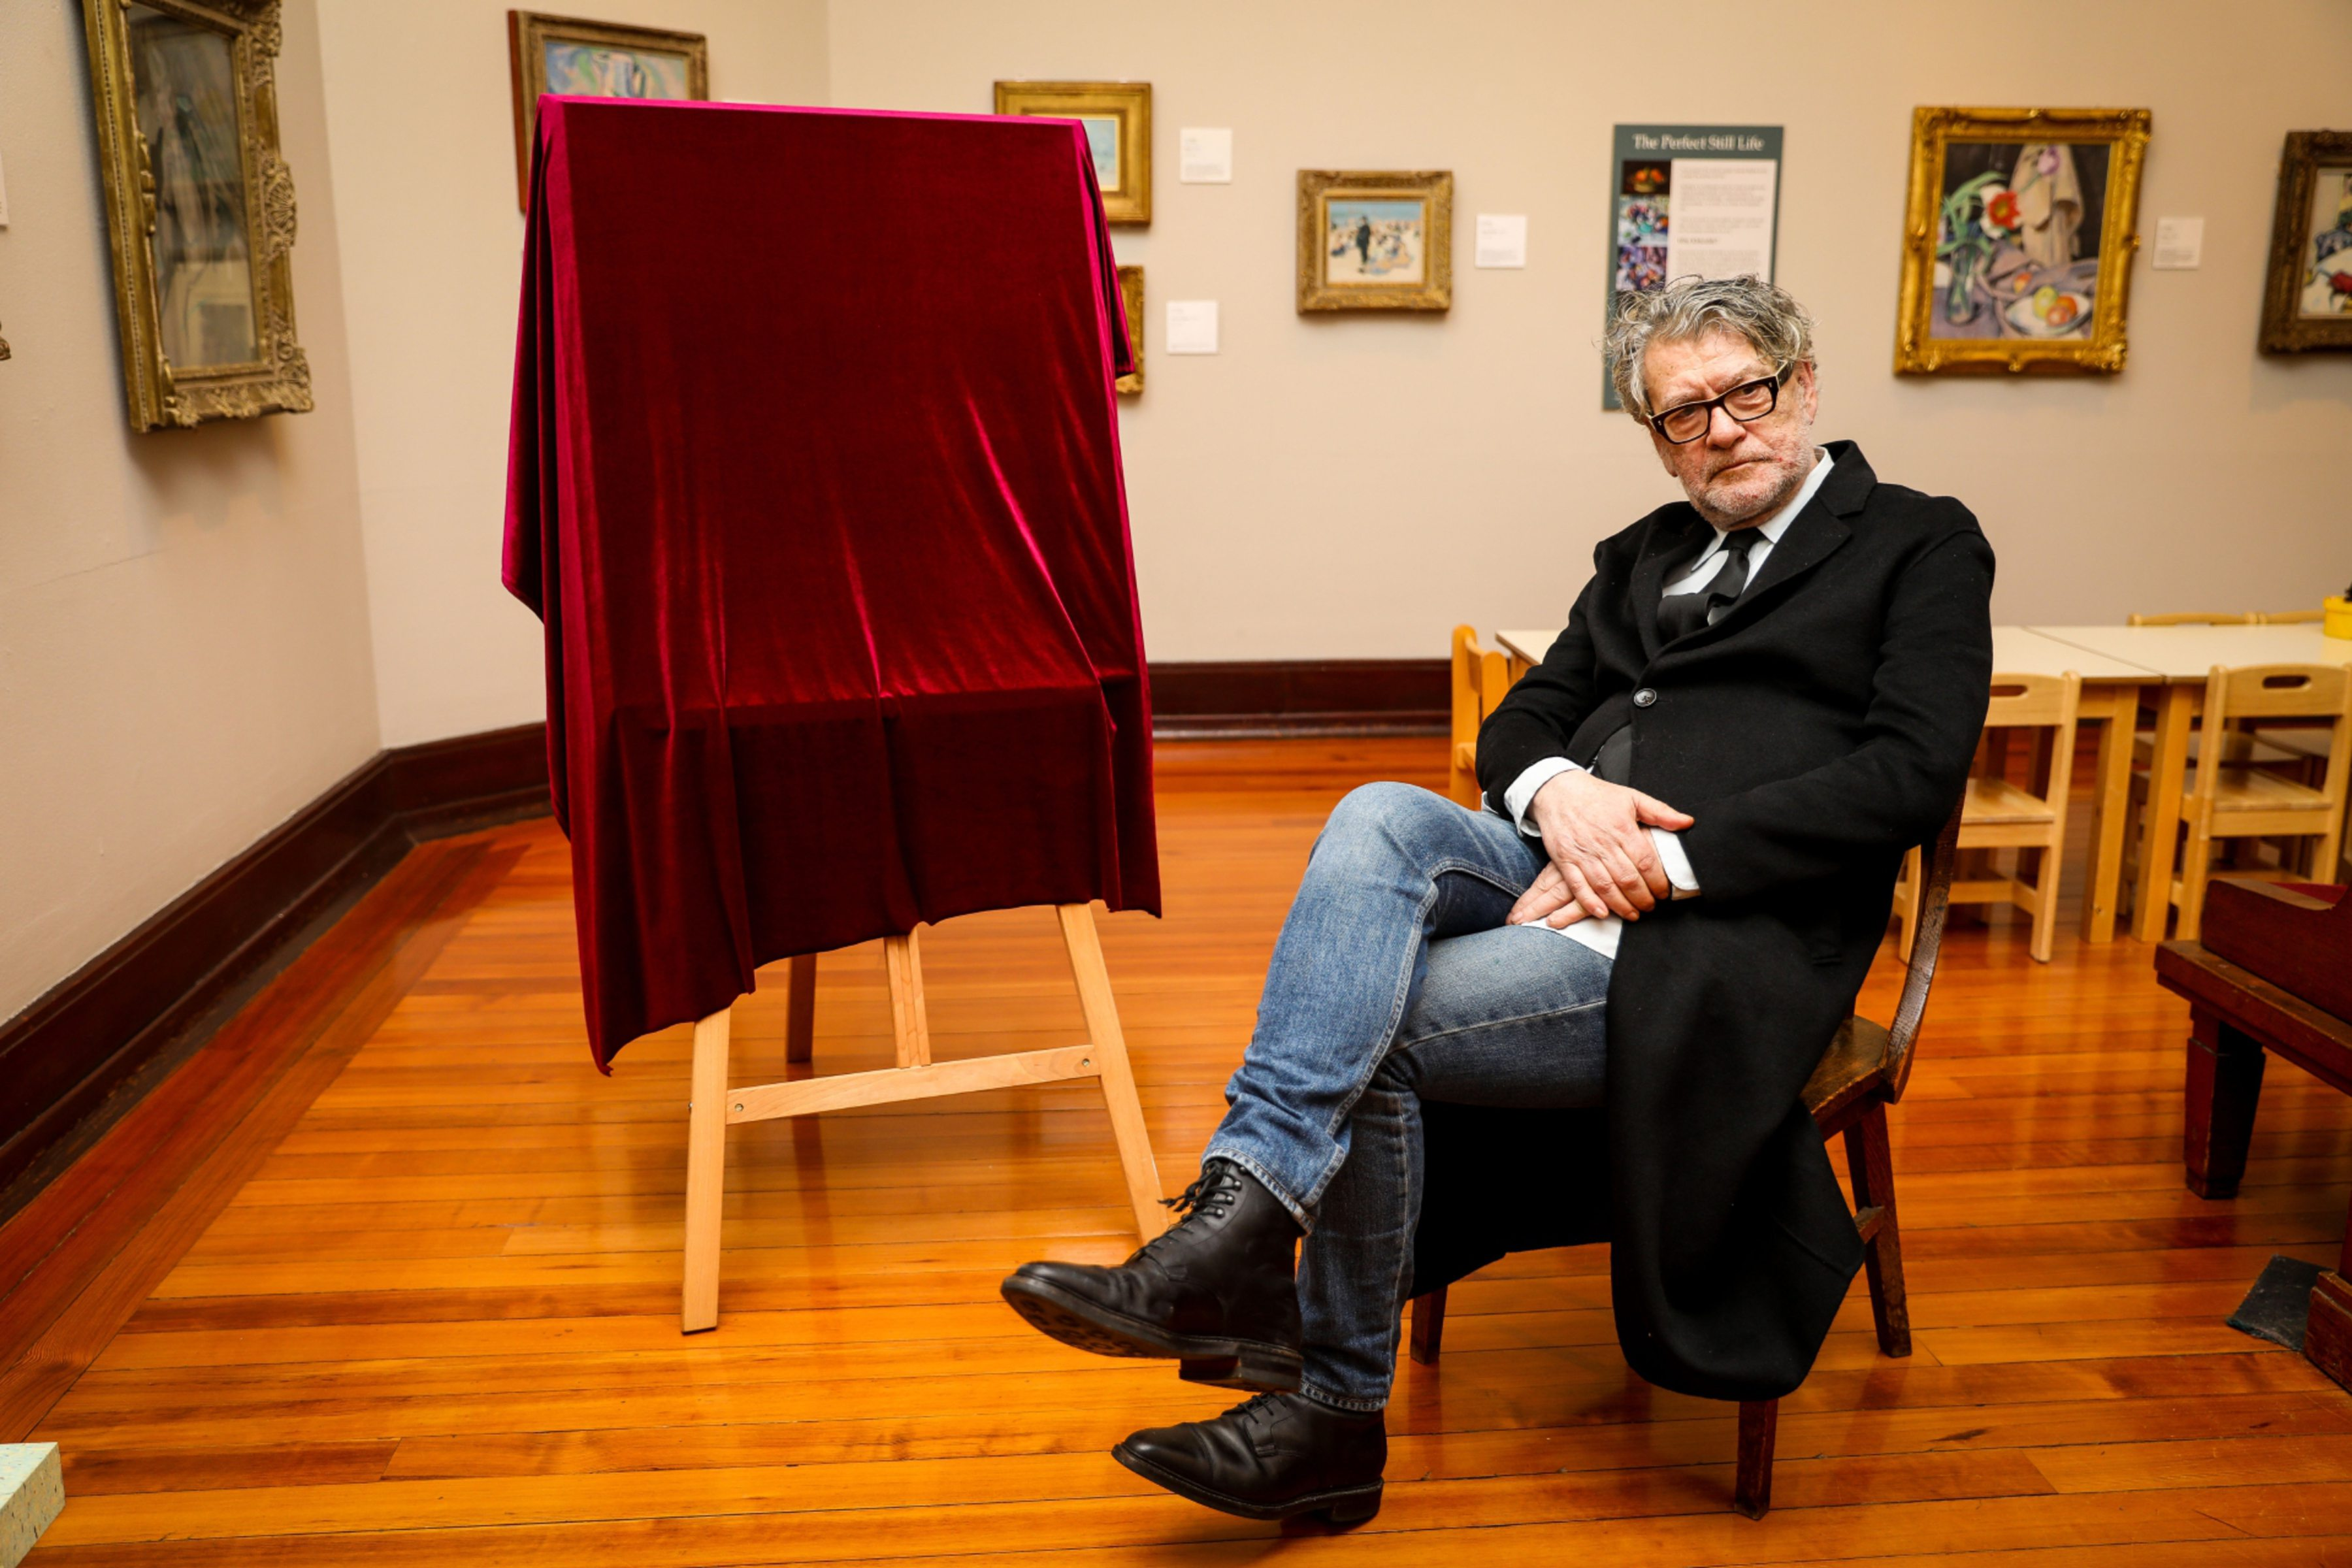 Courier News - Fife - Leeza Clark - Artist Vettriano the early years - CR0014284 - Kirkcaldy - Picture Shows: Artist Jack Vettriano on his upcoming exhibition of The Early Years, here in Kirkcaldy Galleries - Monday 23rd September 2019 - Steve Brown / DCT Media